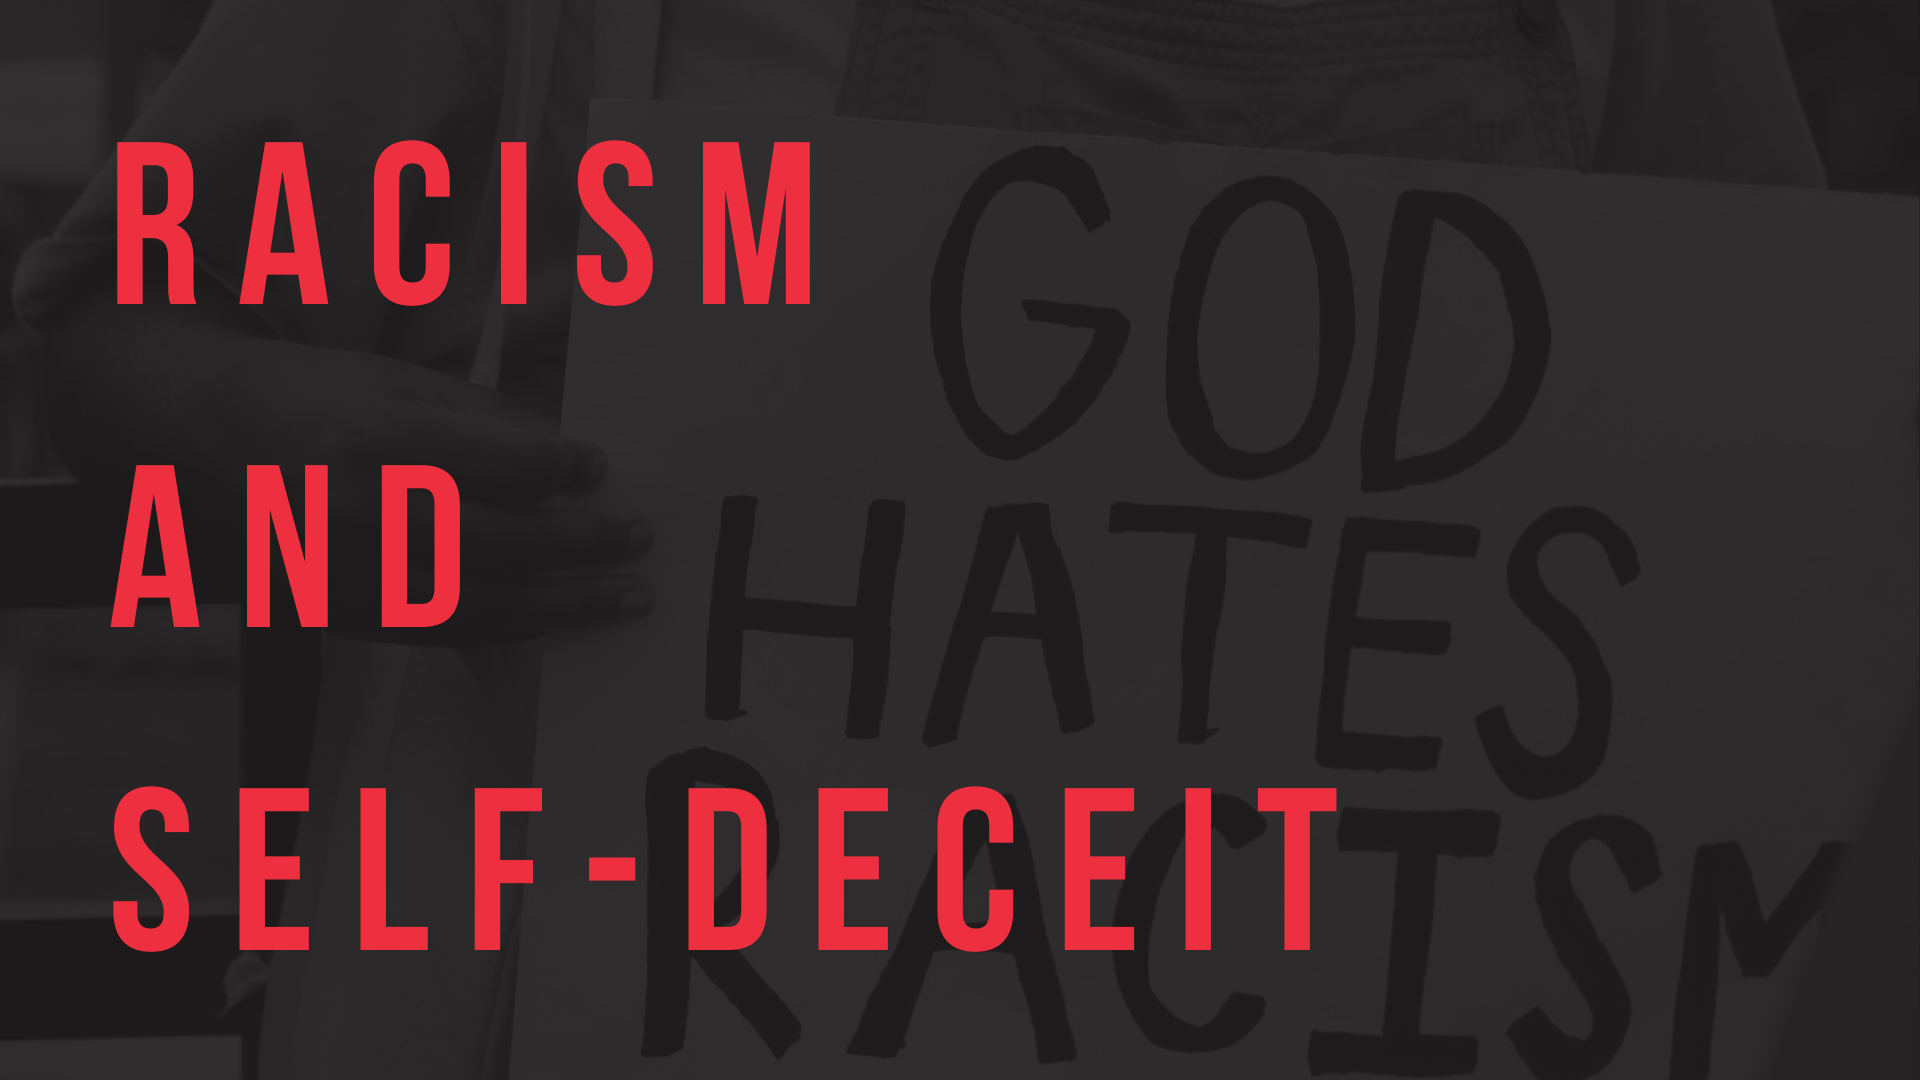 Racism and Self Deceit